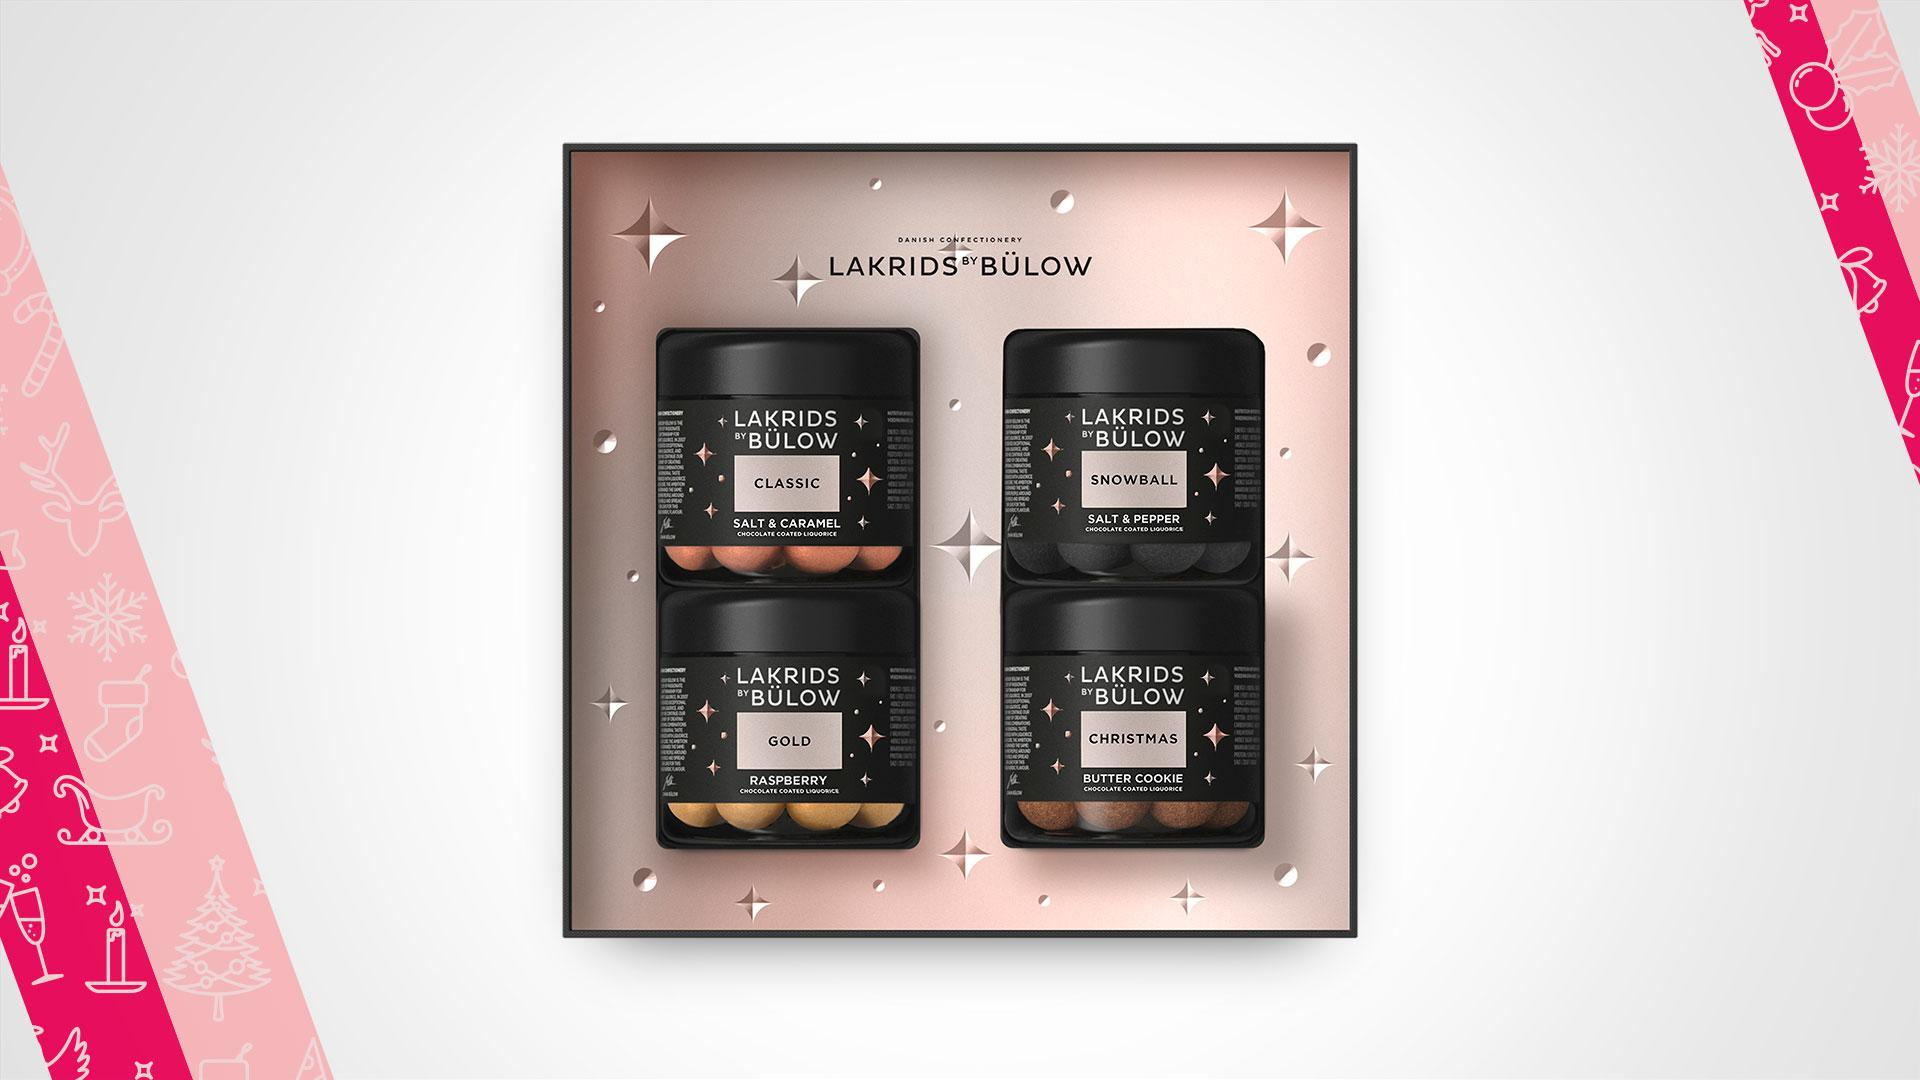 Food and drink Christmas gifts: Lakrids by Bulow